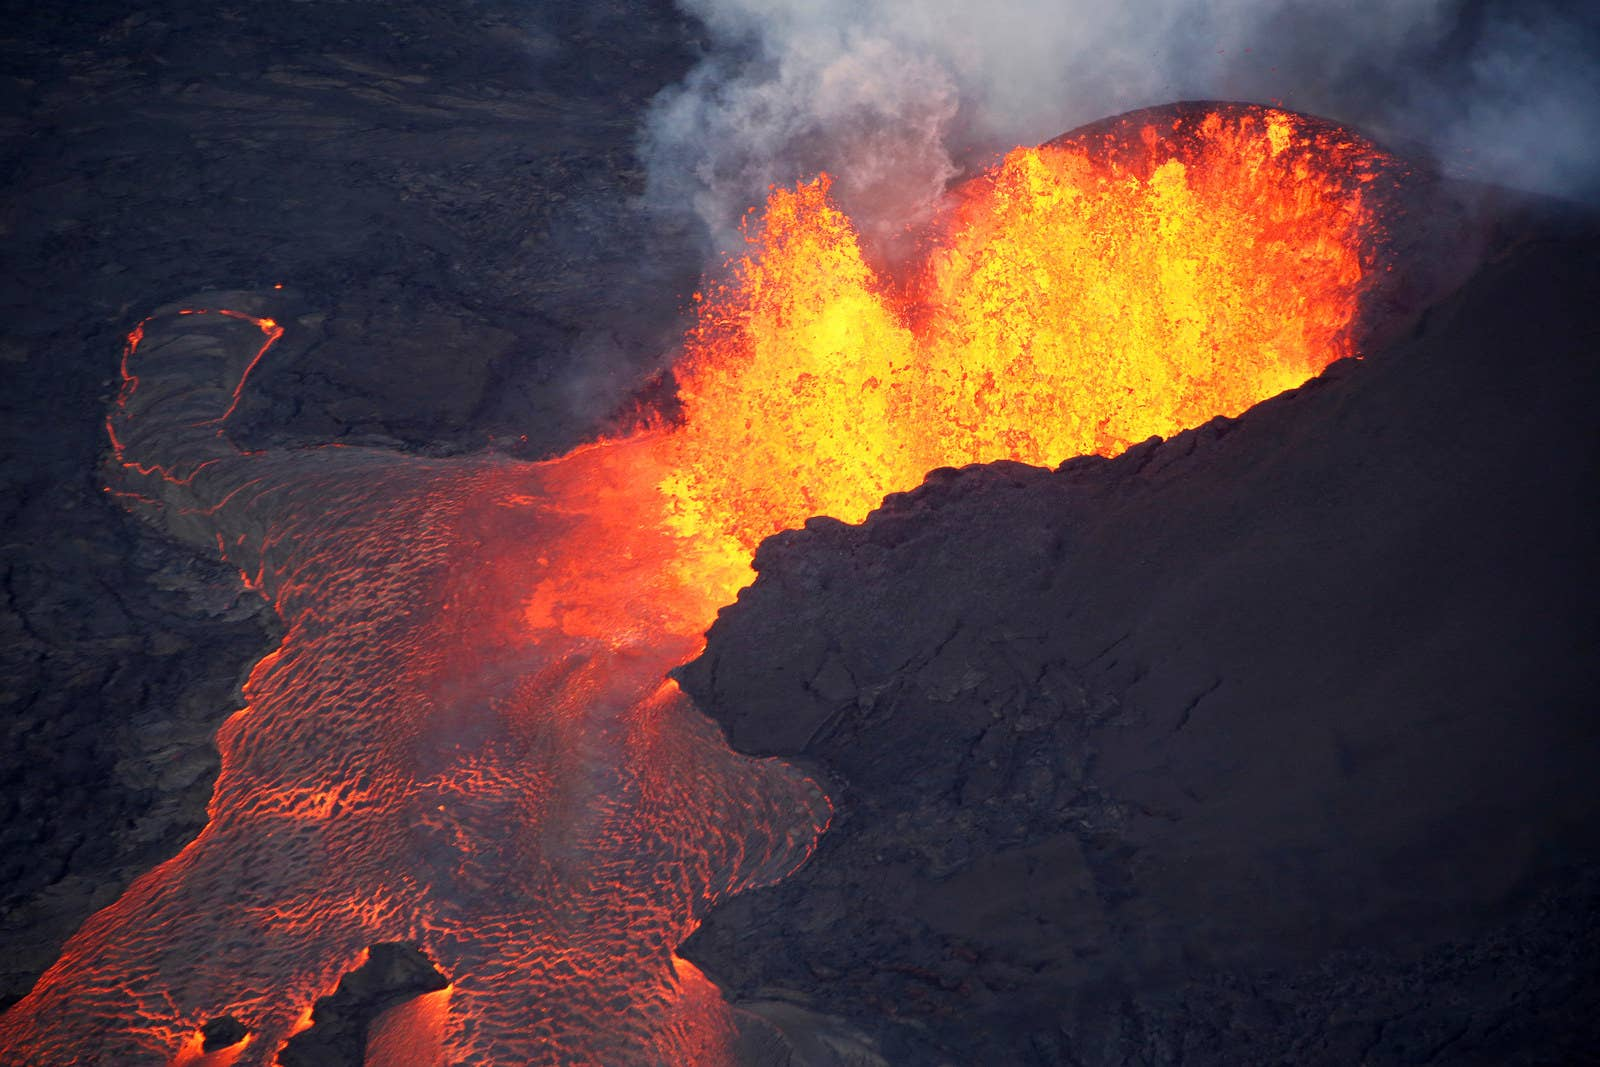 Lava has spurted as high as 270 feet from fissures like this one.